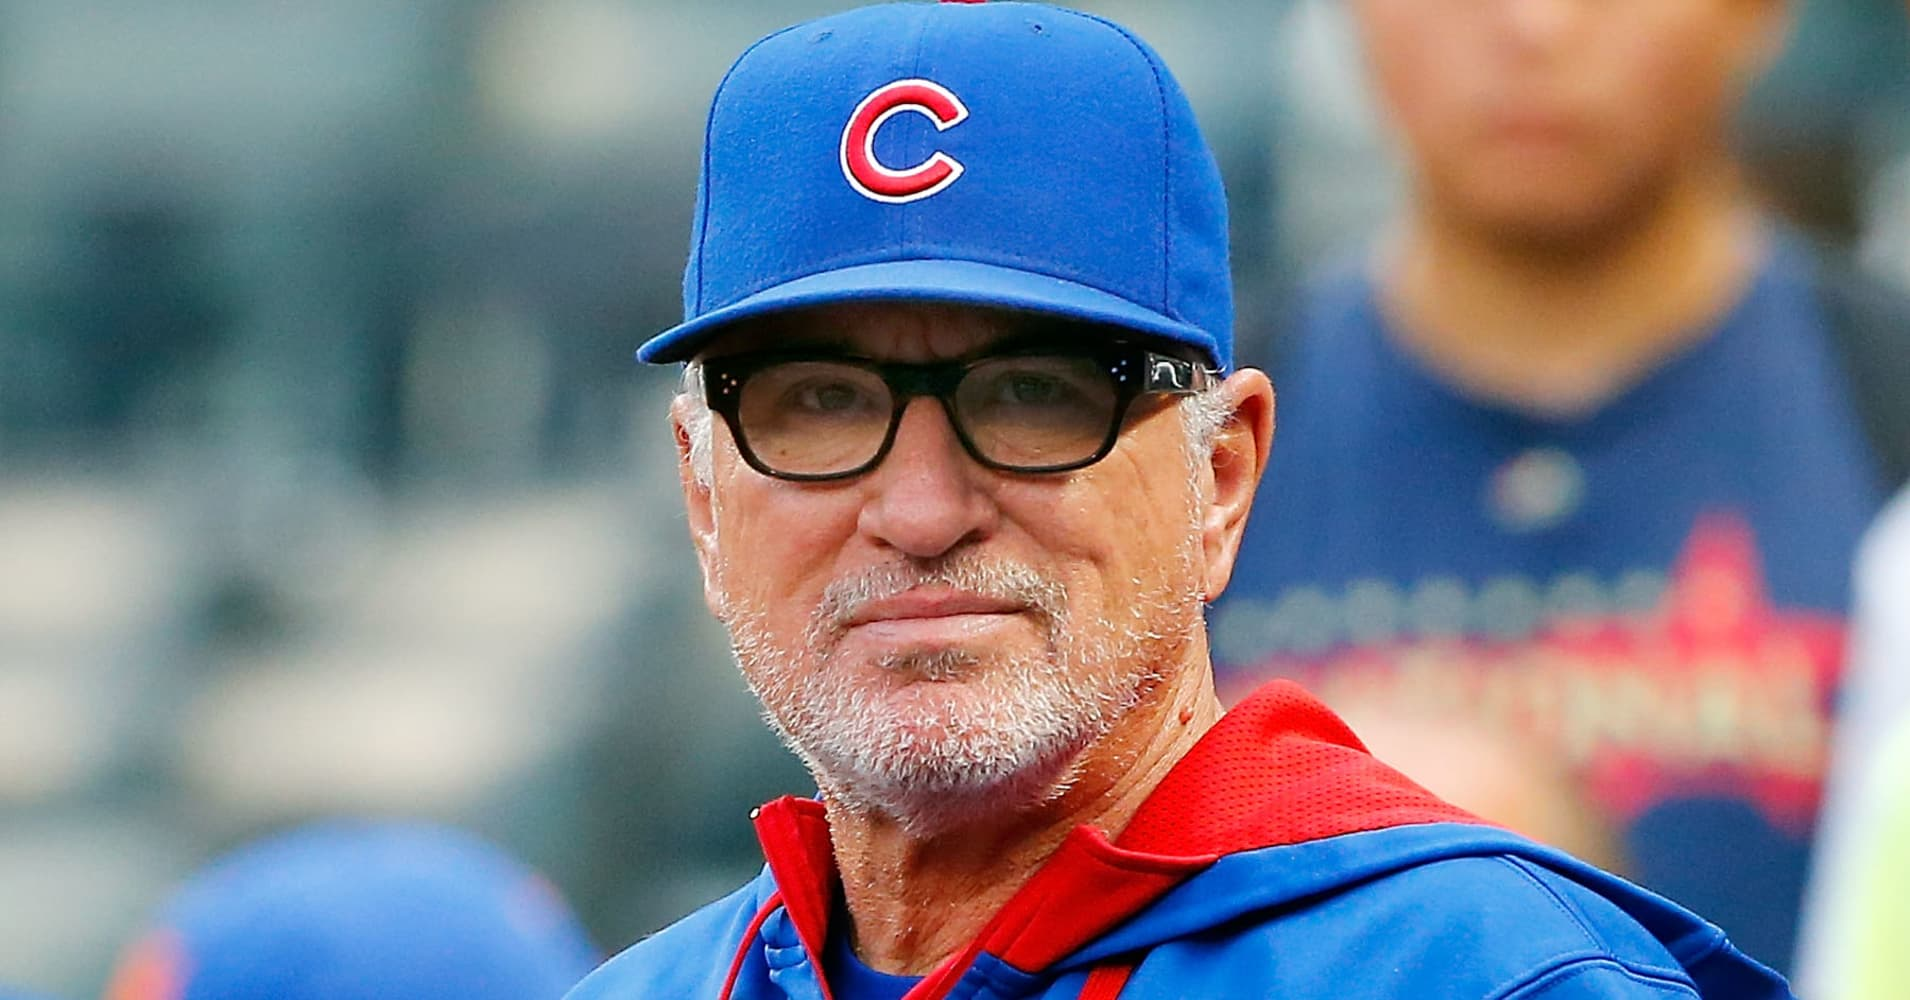 Joe Maddon, manager of the Chicago Cubs